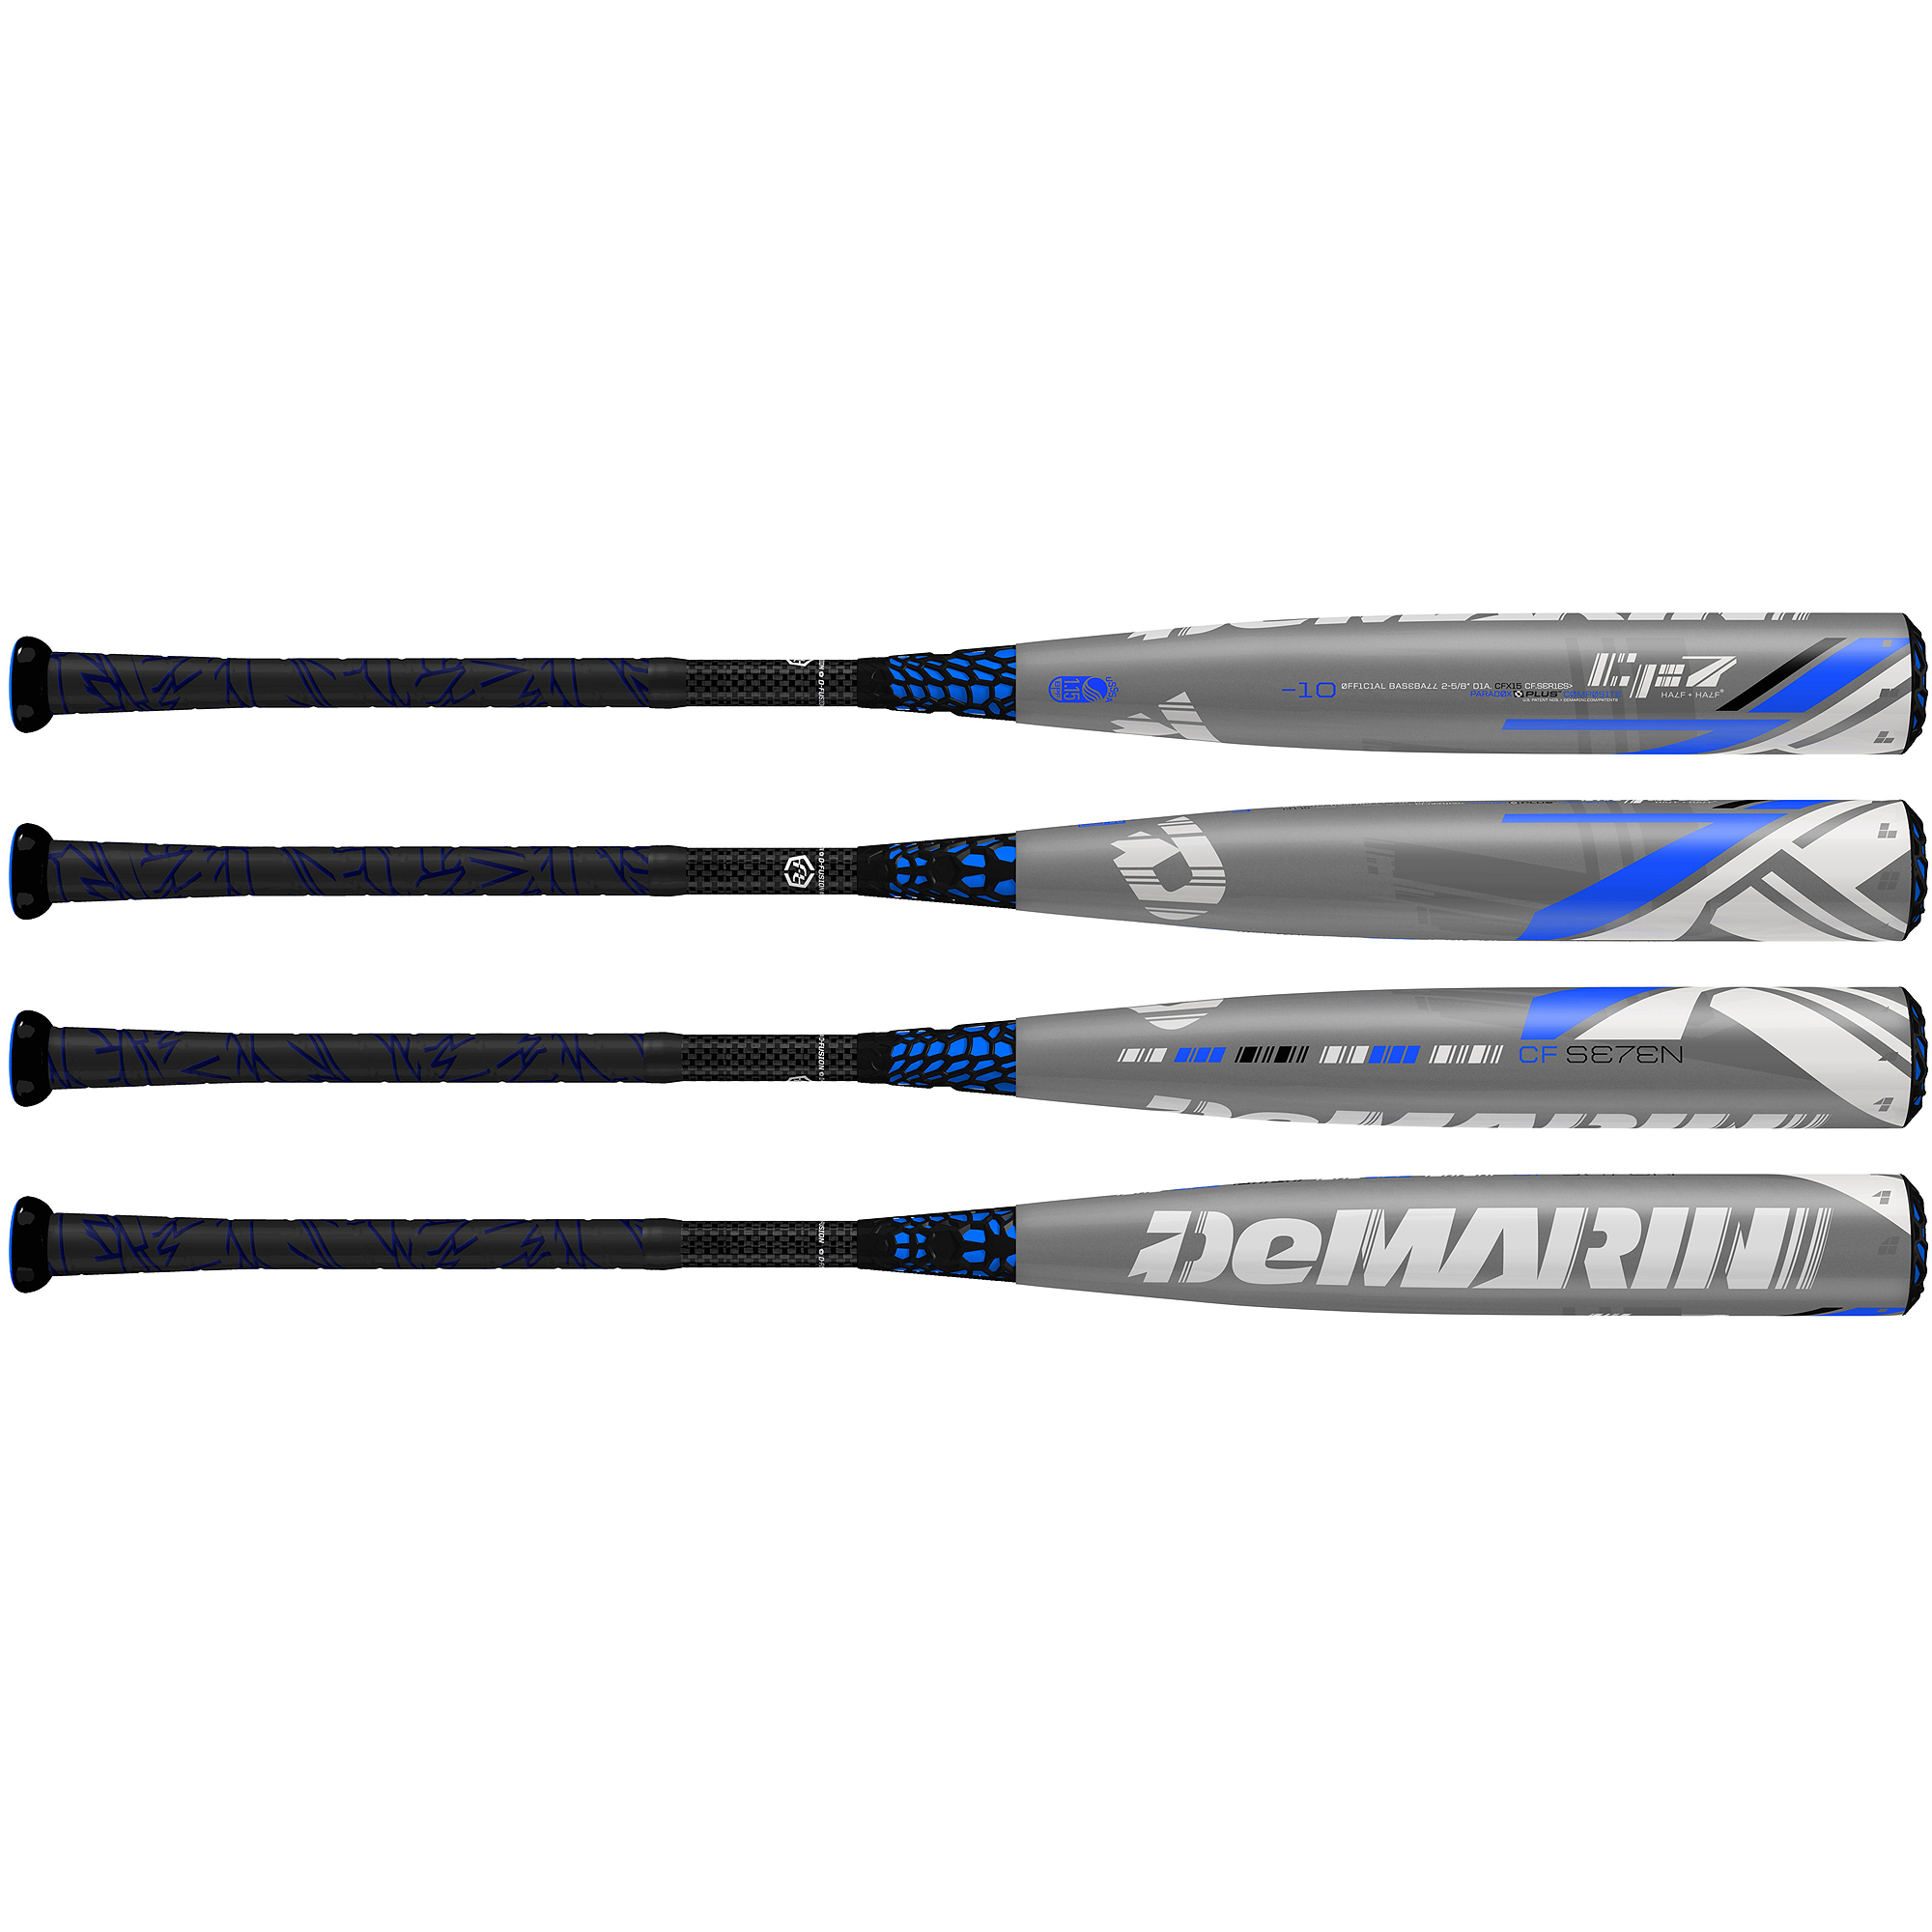 "DeMarini CF7 Youth Big Barrel (2-5/8"") -10 Baseball Bat"